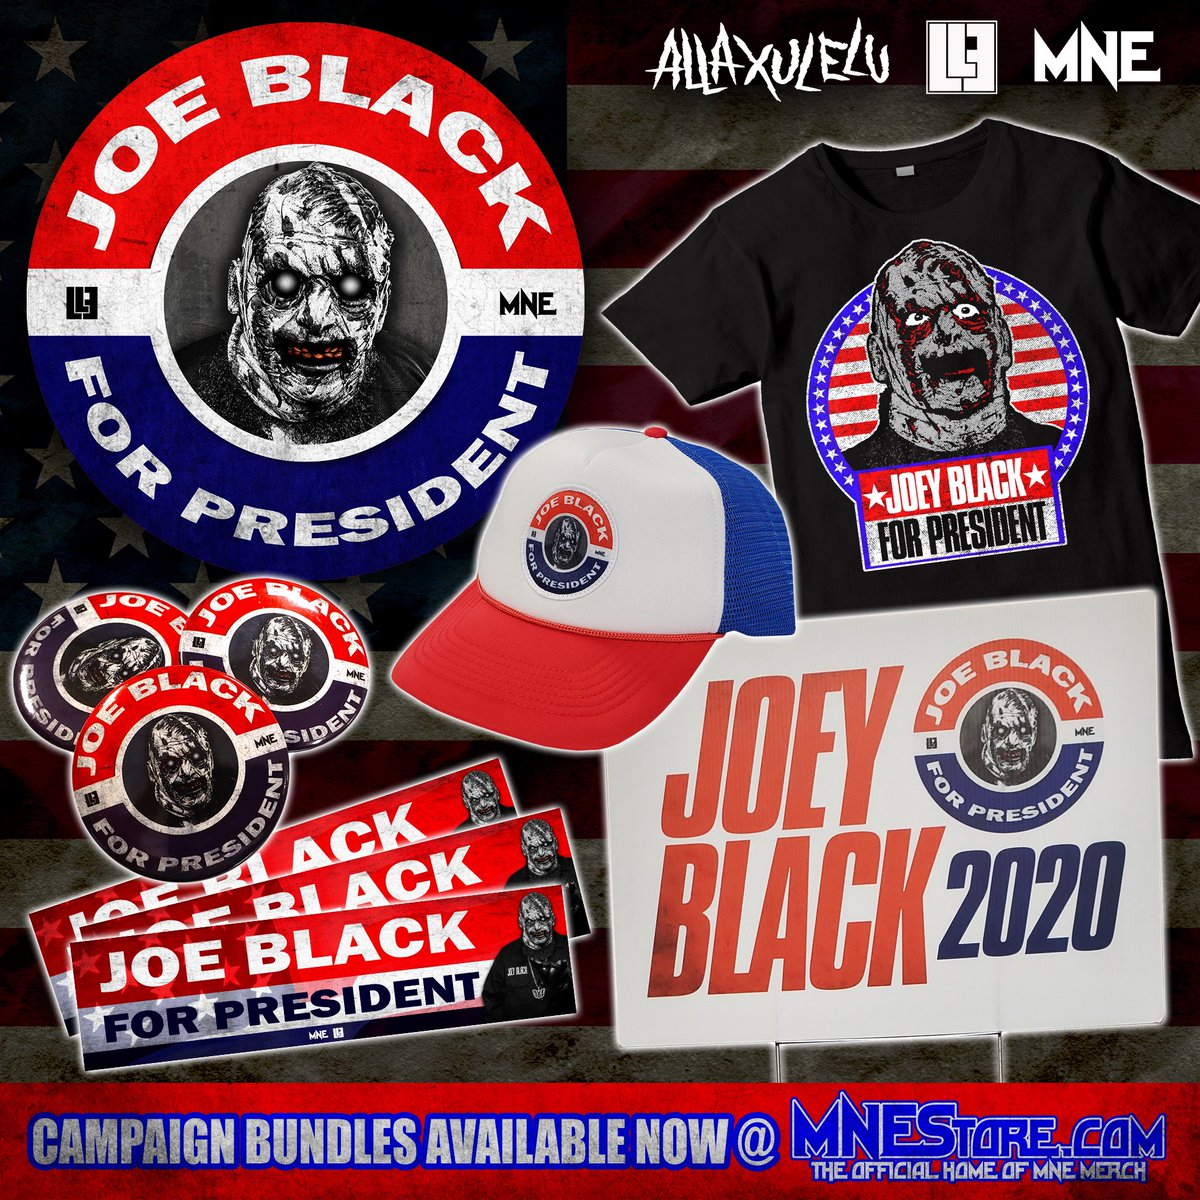 Vote #joeblack for #president campaign bundles are now available @twiztidshop (https://t.co/WeqdfBKfMM) 💀 Support Joe on this most important venture!!! #majikninjaentertainment #allaxulelu #axe #mne2020 #underground https://t.co/XKNlObDTOb